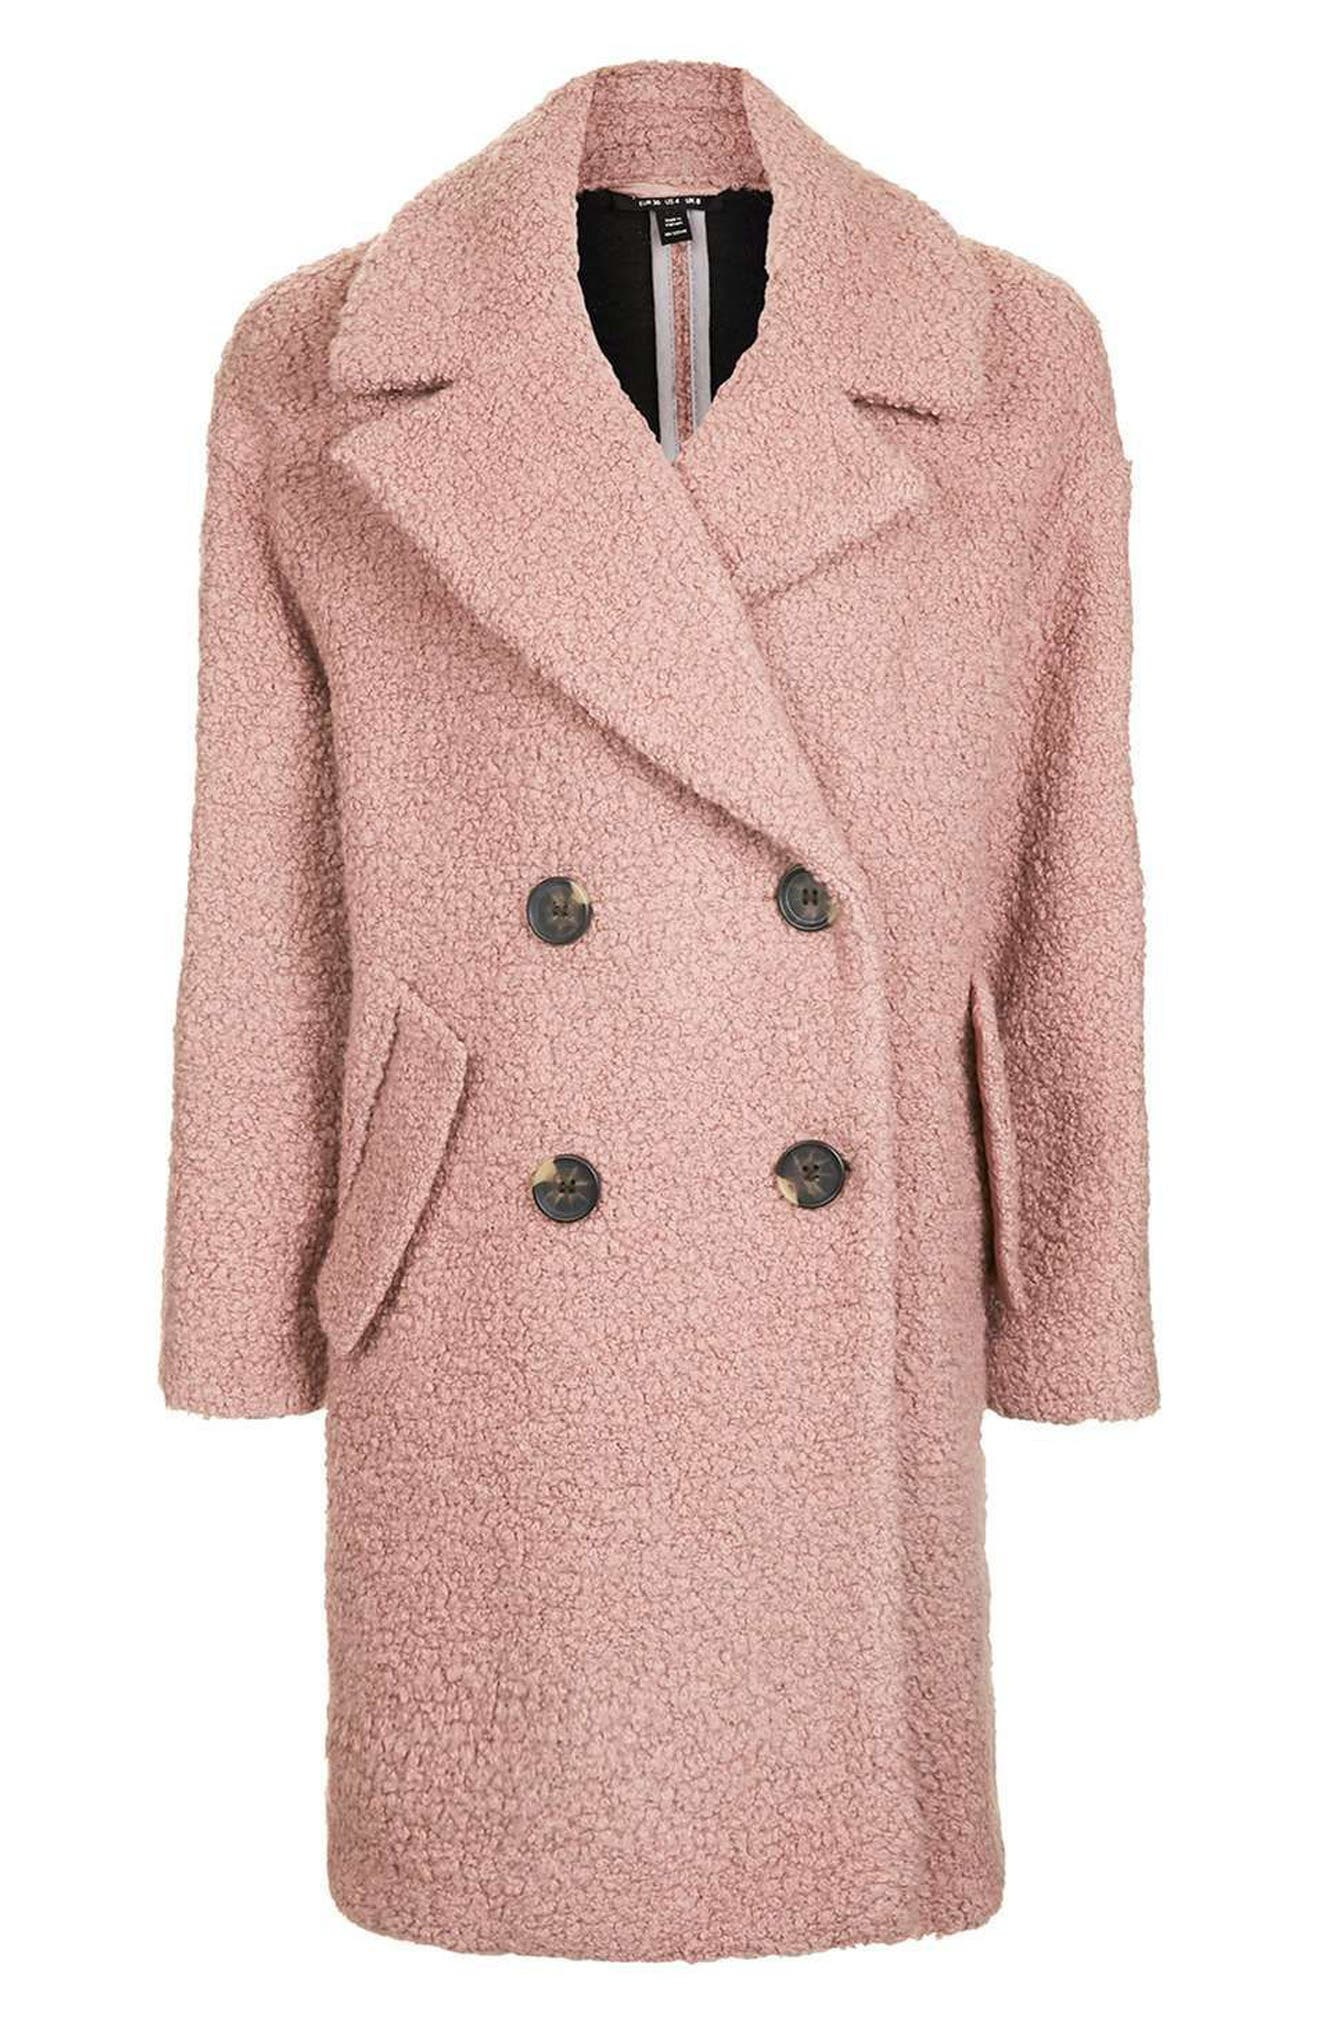 Alicia Bouclé Coat,                             Alternate thumbnail 5, color,                             650